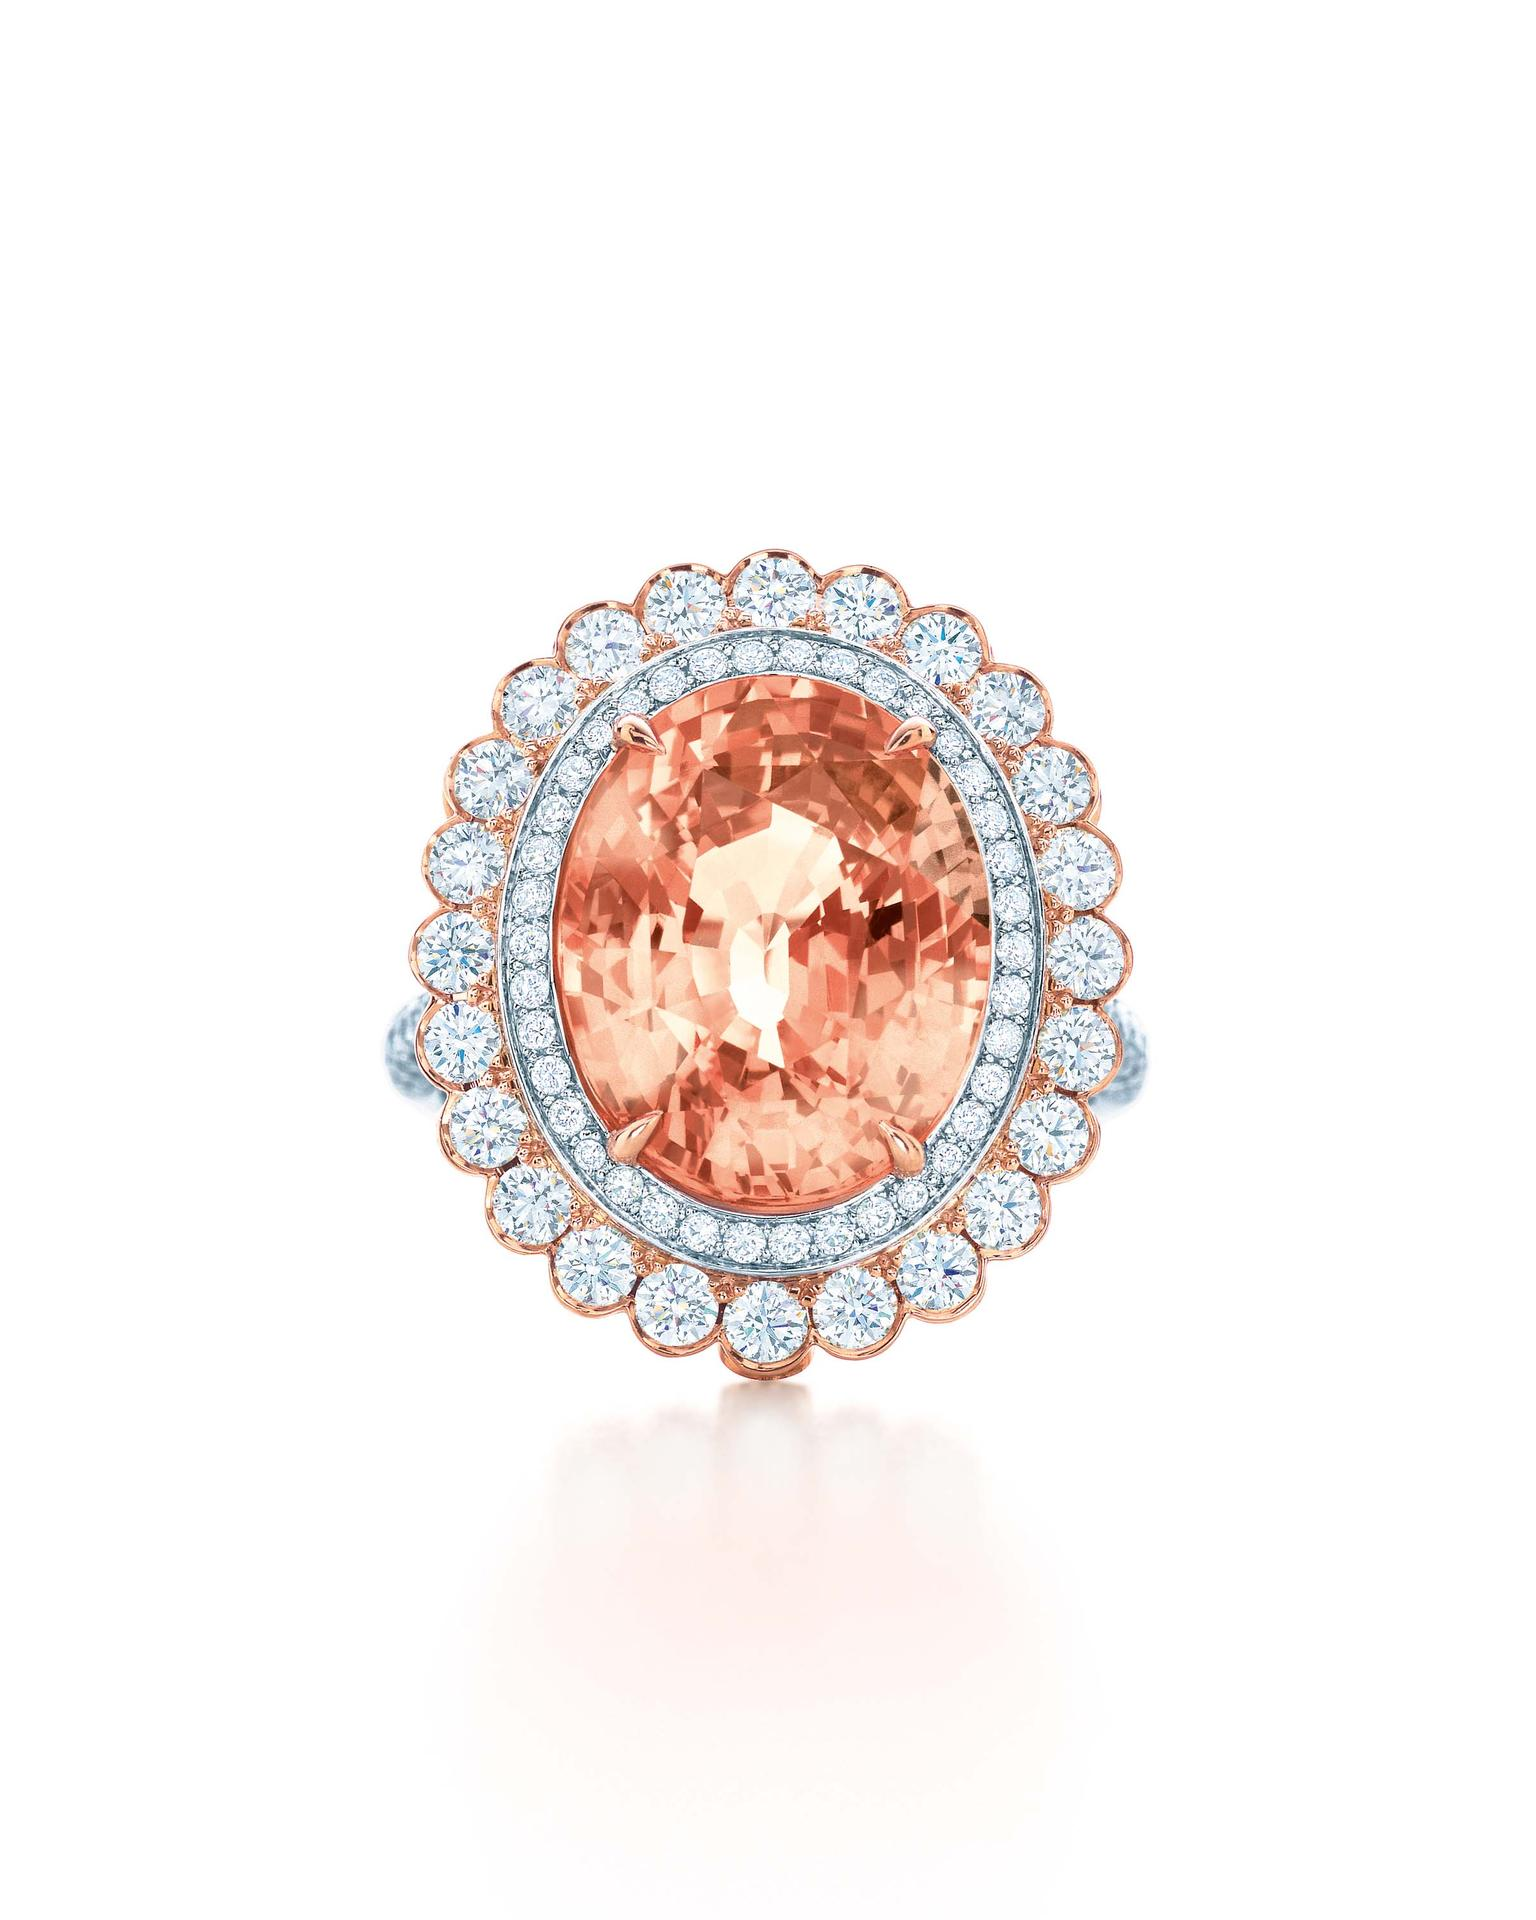 Tiffany & Co. Blue Book Collection padparadscha sapphire ring with diamonds set in rose gold and platinum